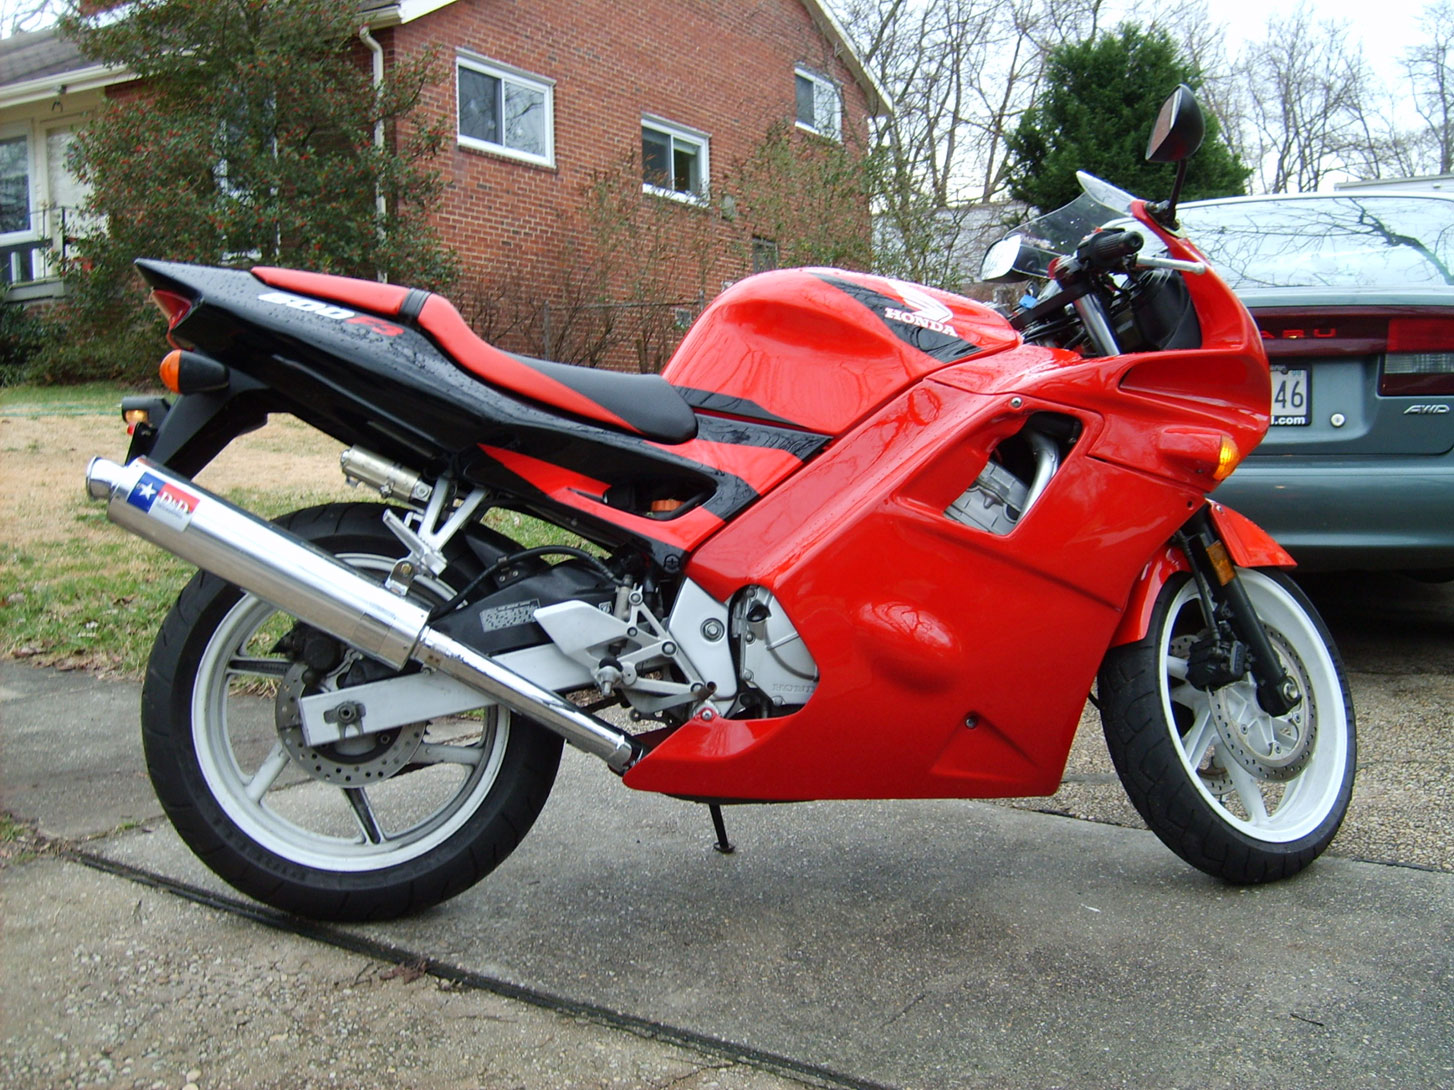 So Who All Here Has A Cbr600f3 Sport Bikes